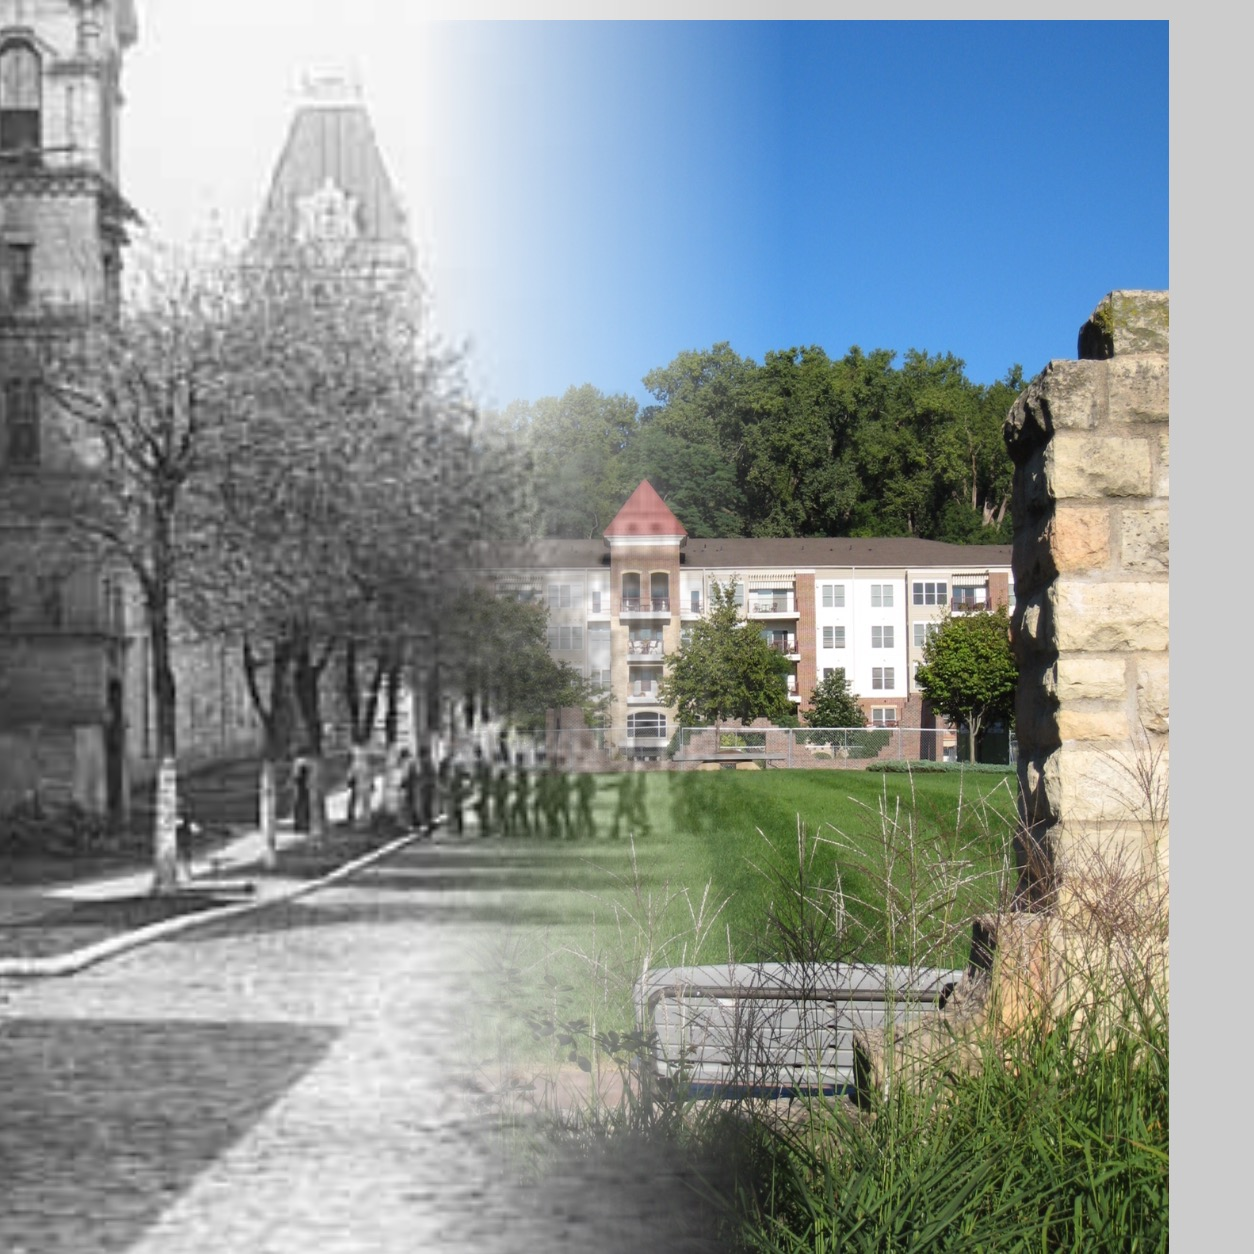 """This is a """"Time-Tunnel"""" photo between the years 1907 and 2016. This allows you to travel between these years at the same location and vantage point. Photo credit is Mr. John Runk and R. Molenda, courtesy of the Stillwater Public Library. This is presently the location of Terra Springs Condominiums. The only part of the original prison left is the rock wall in the foreground."""